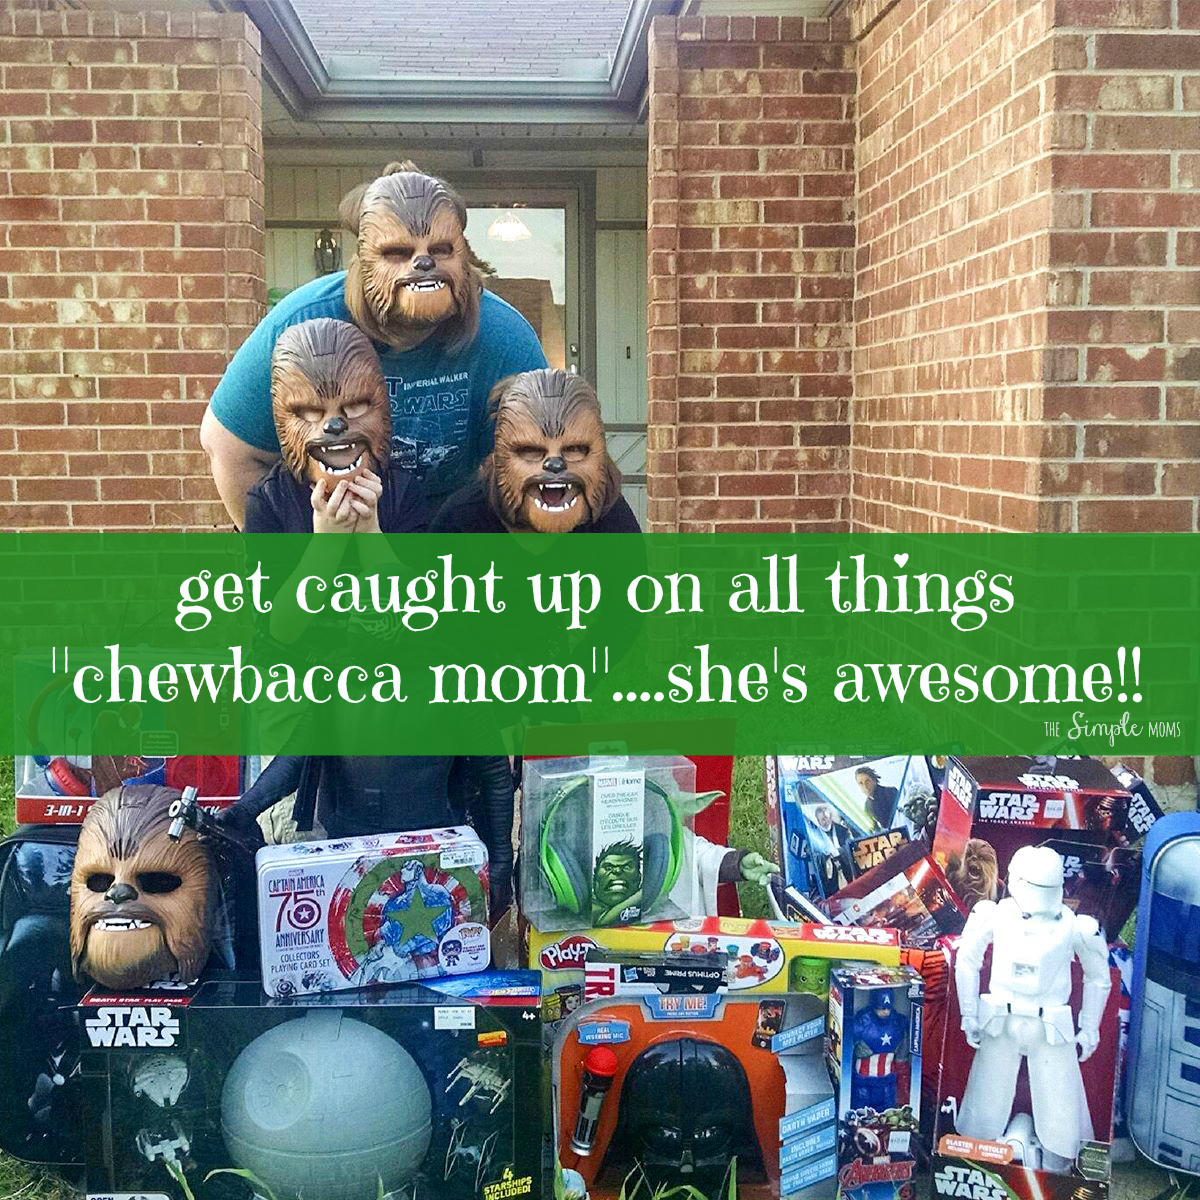 Chewbacca Mom is awesome